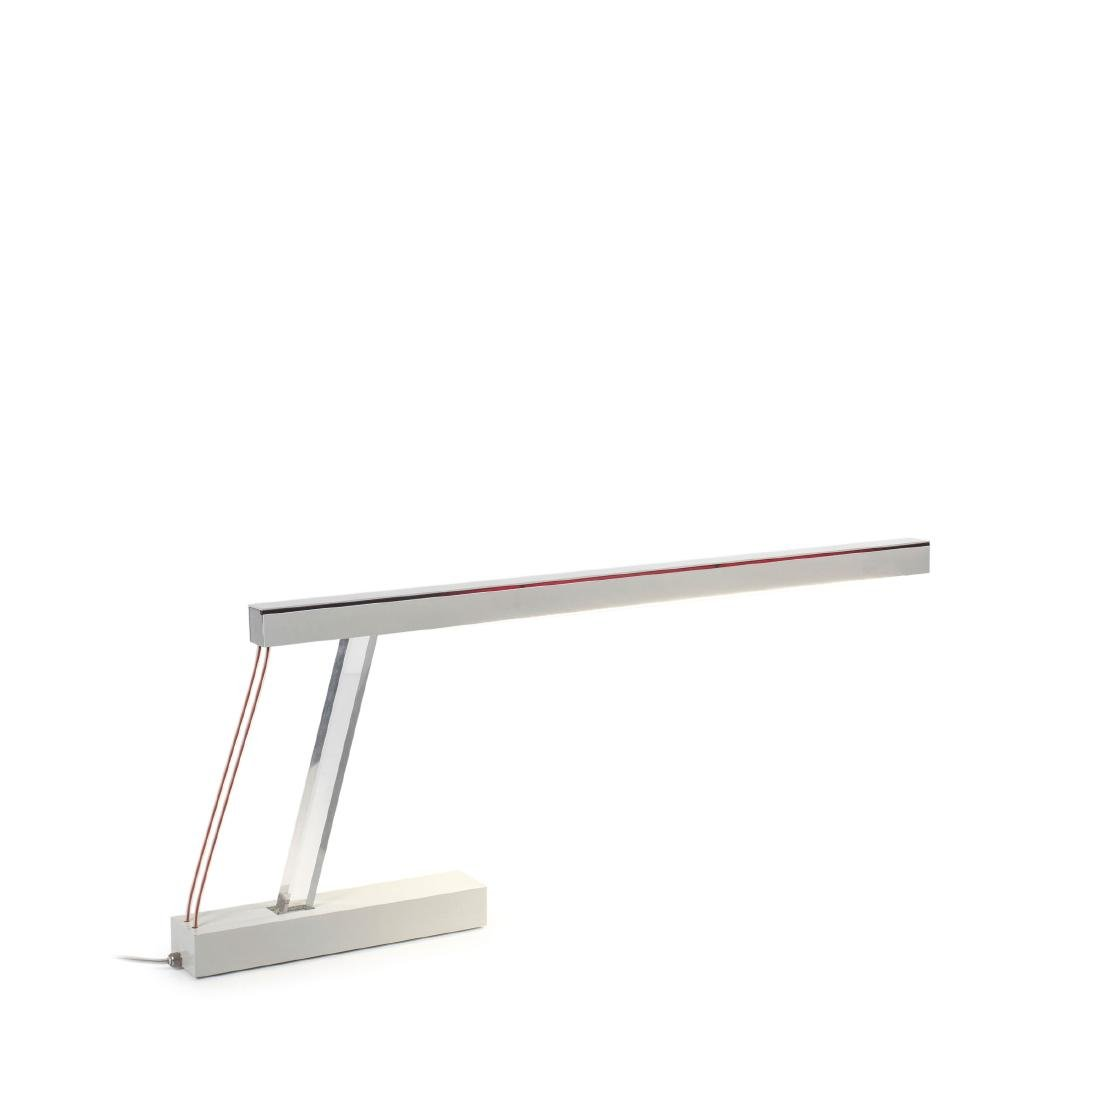 Table light, c. 1965